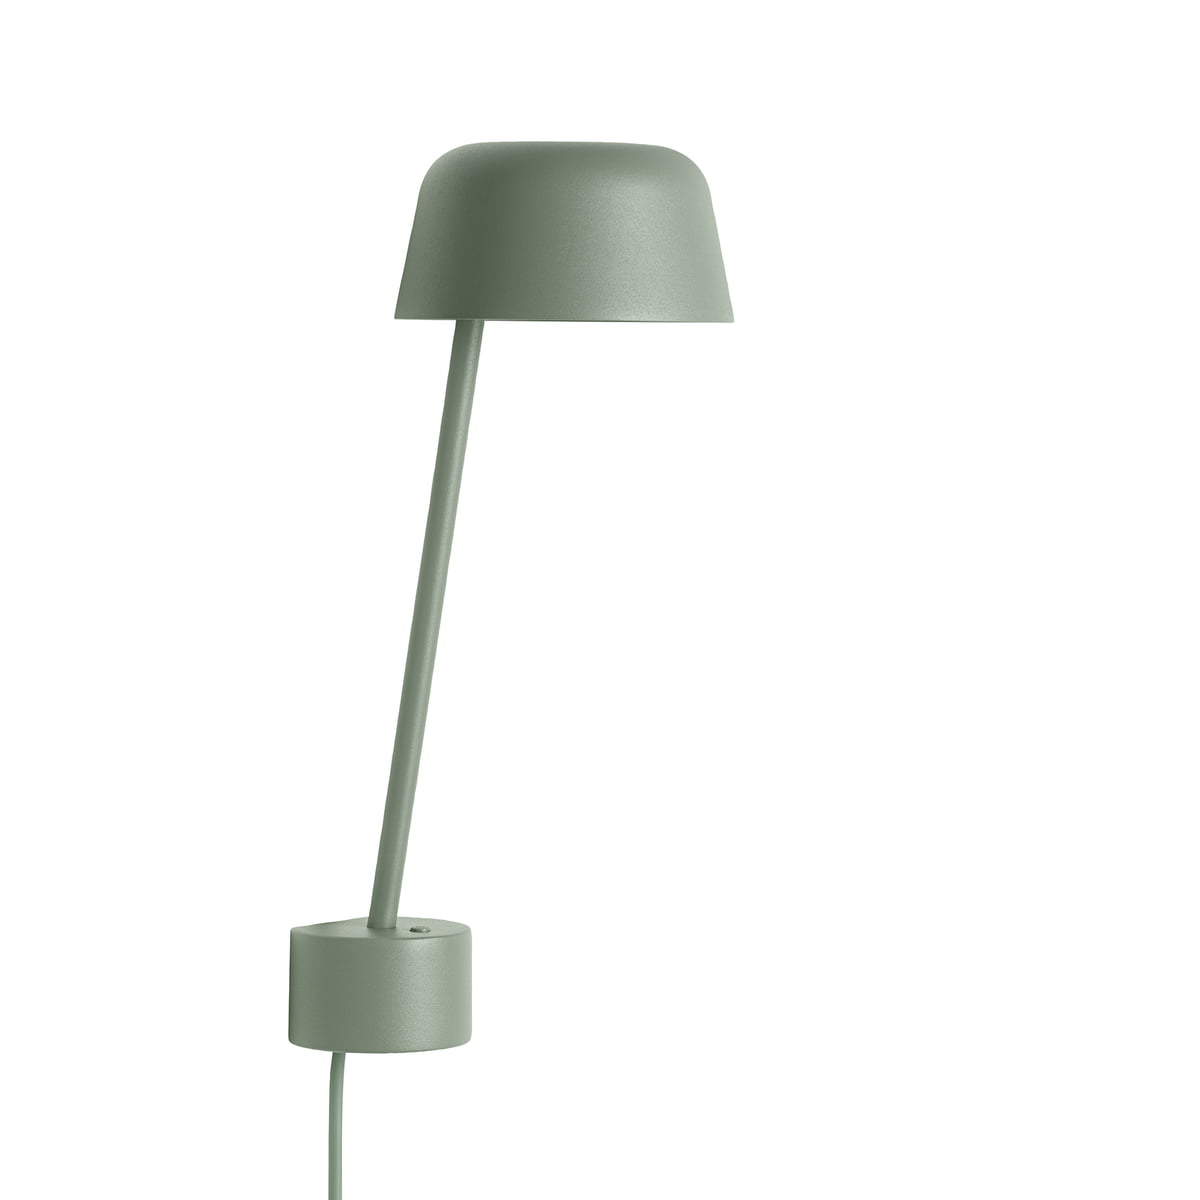 Lean wall lamp by muuto online the lean wall lamp led by muuto in dusty green parisarafo Choice Image